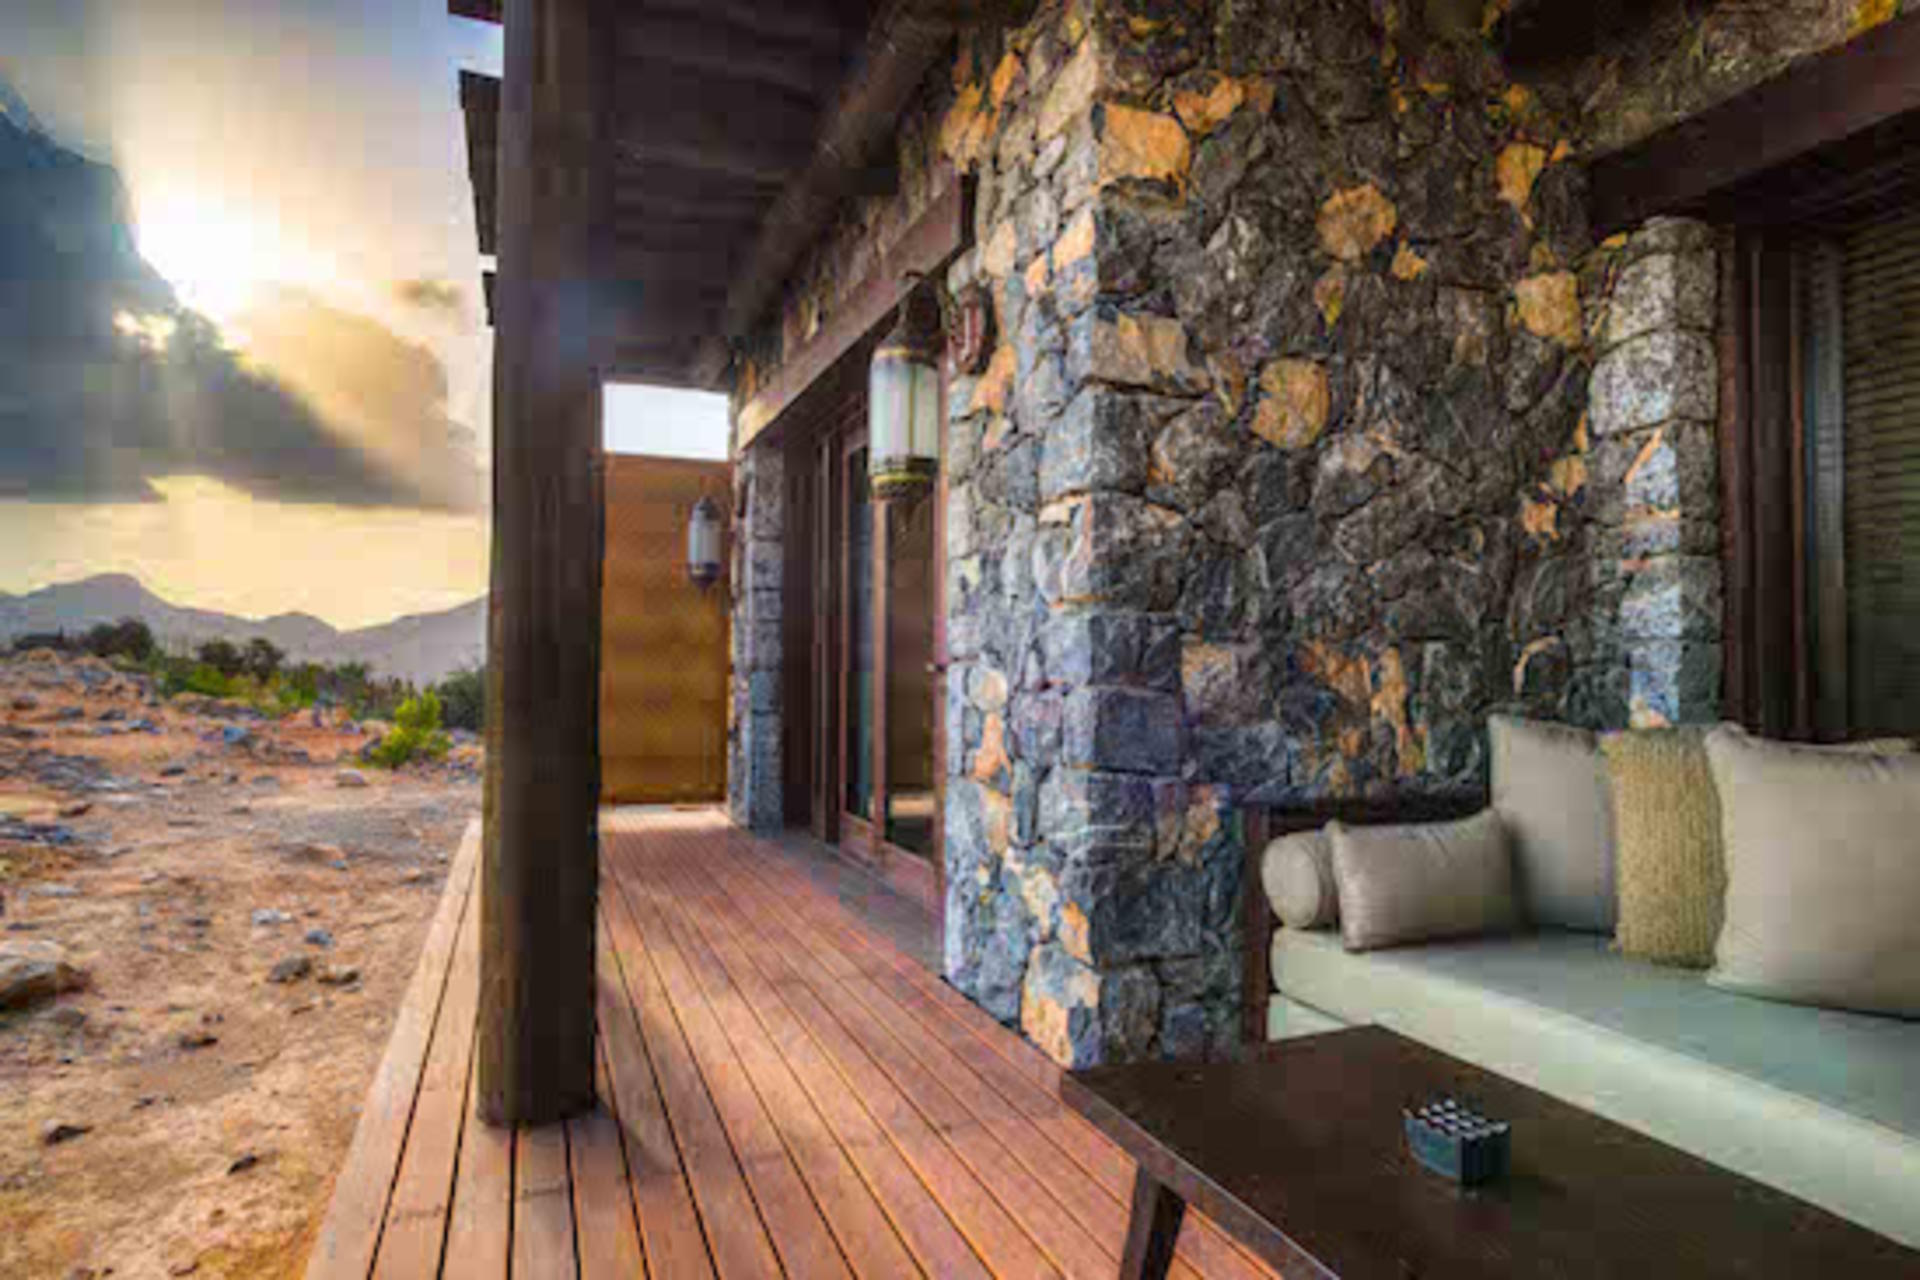 Alila Jabal Akhdar - Horizon View balcony